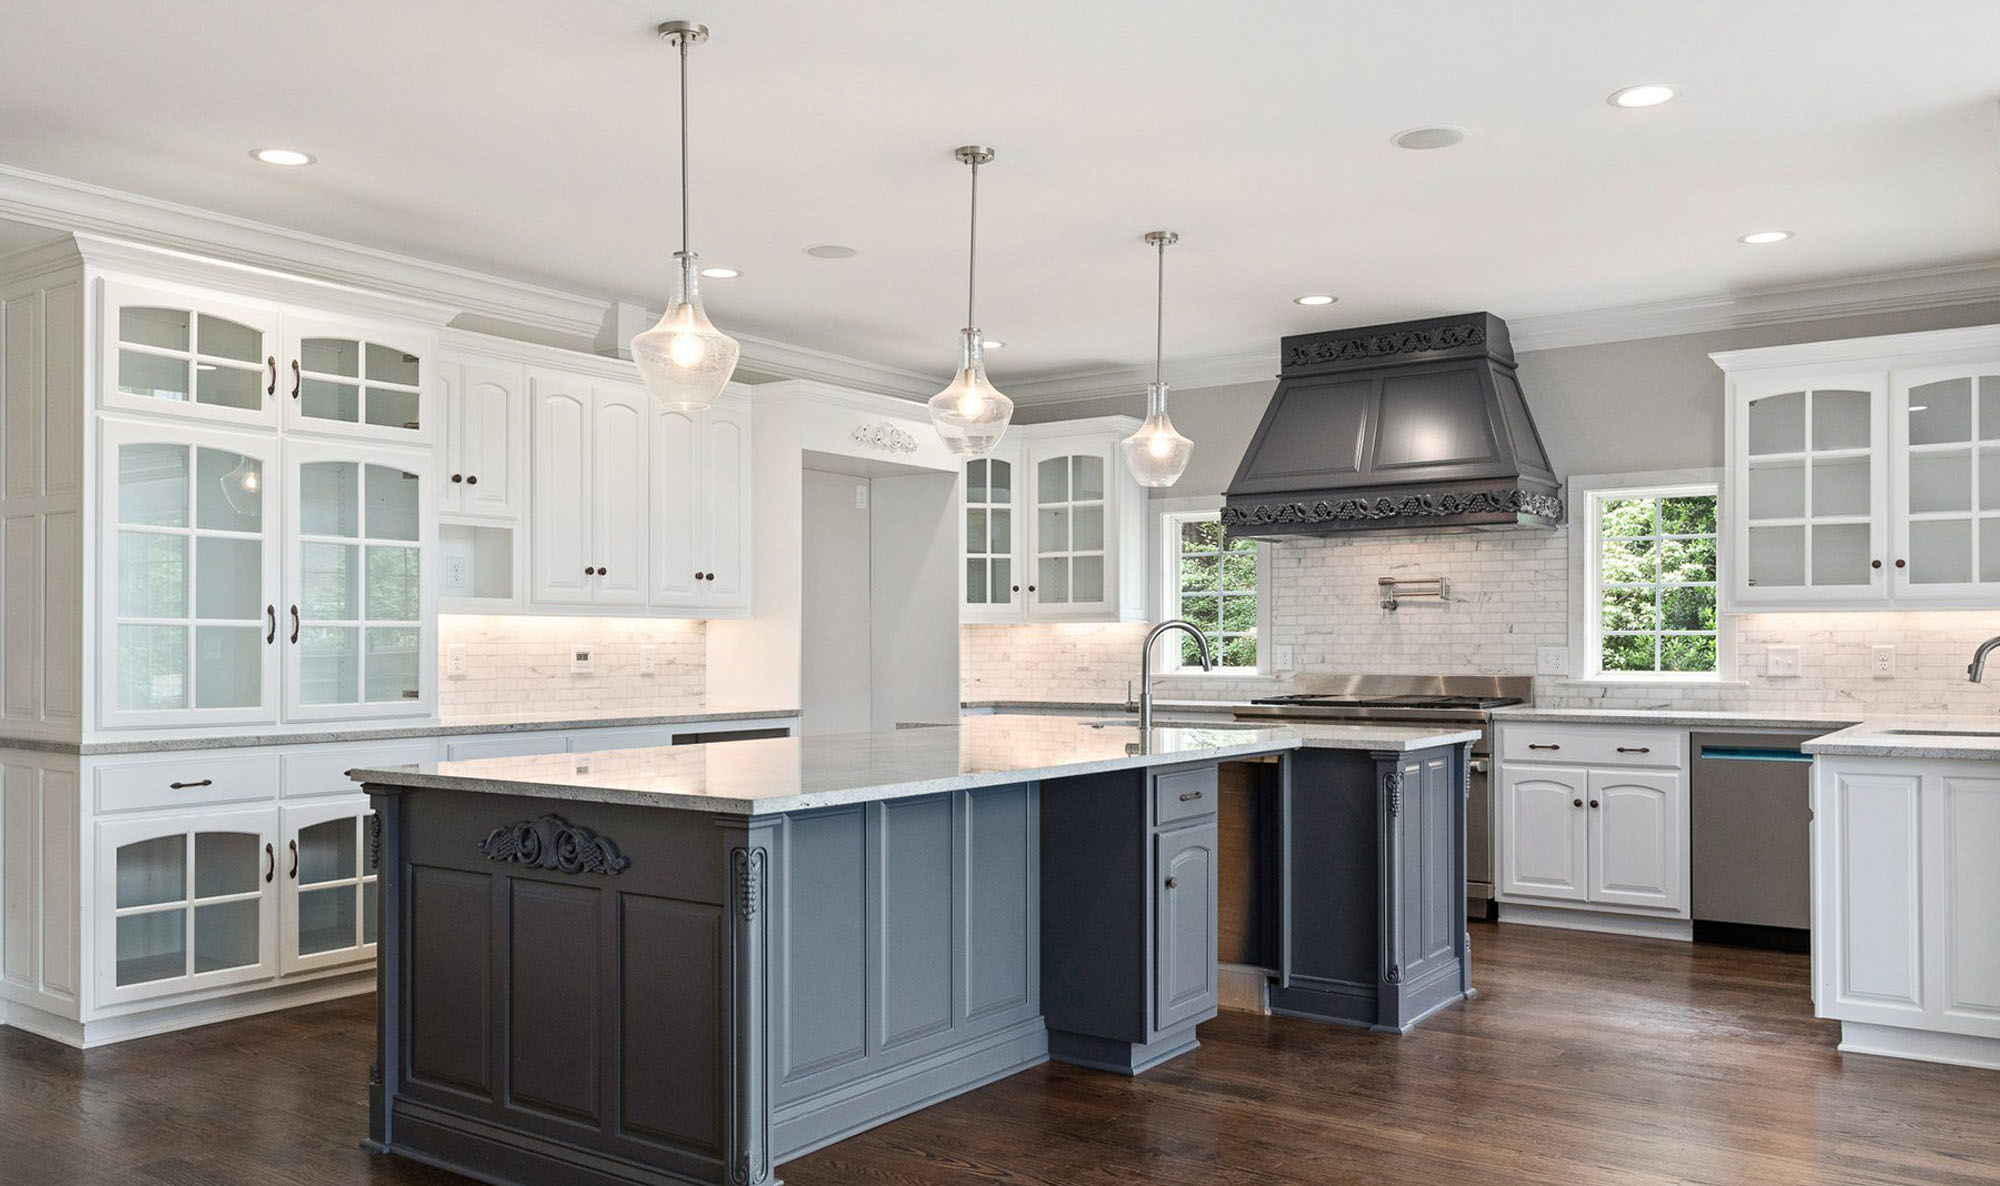 Country style white and gray kitchen with white cabinetry and dark gray island. Marble countertops with matching backsplash. medium brown wood floors.